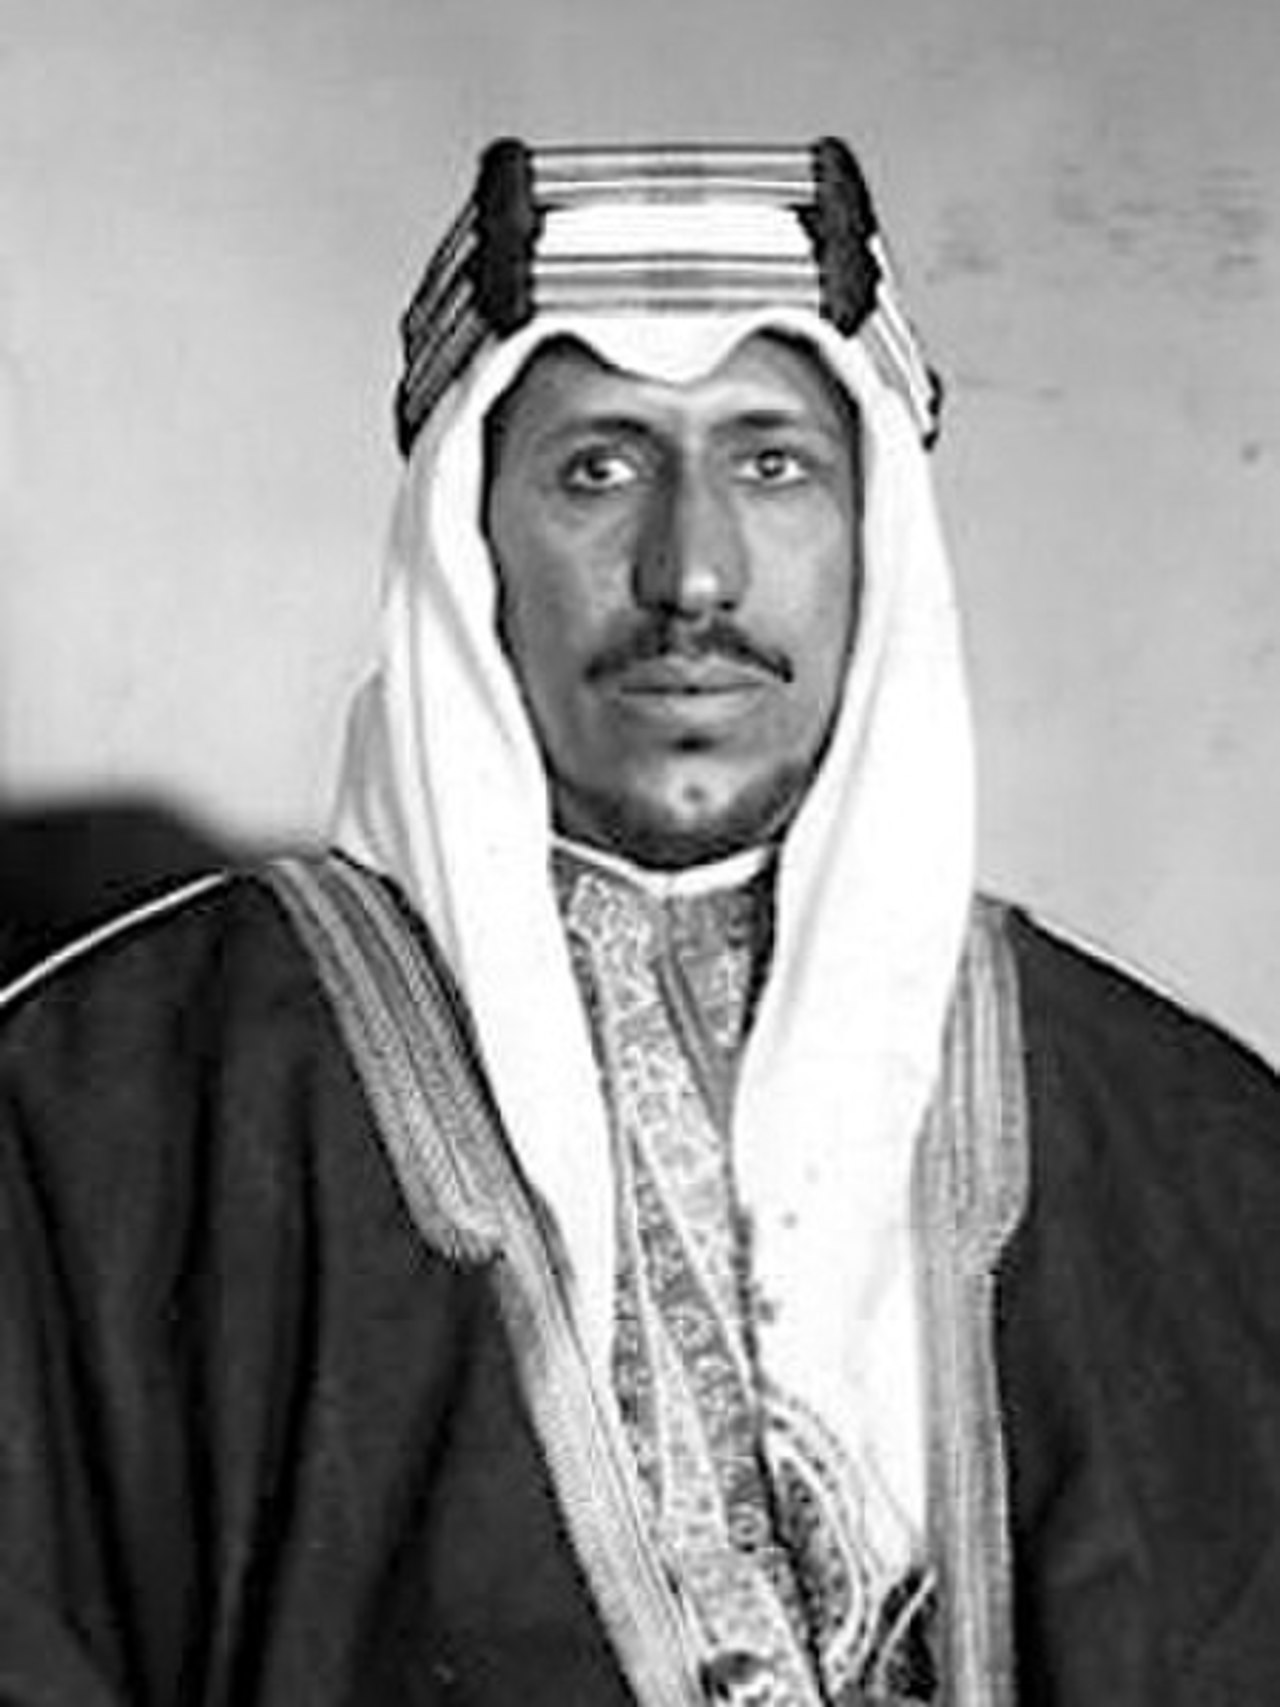 Saud of Saudi Arabia King of Saudi Arabia